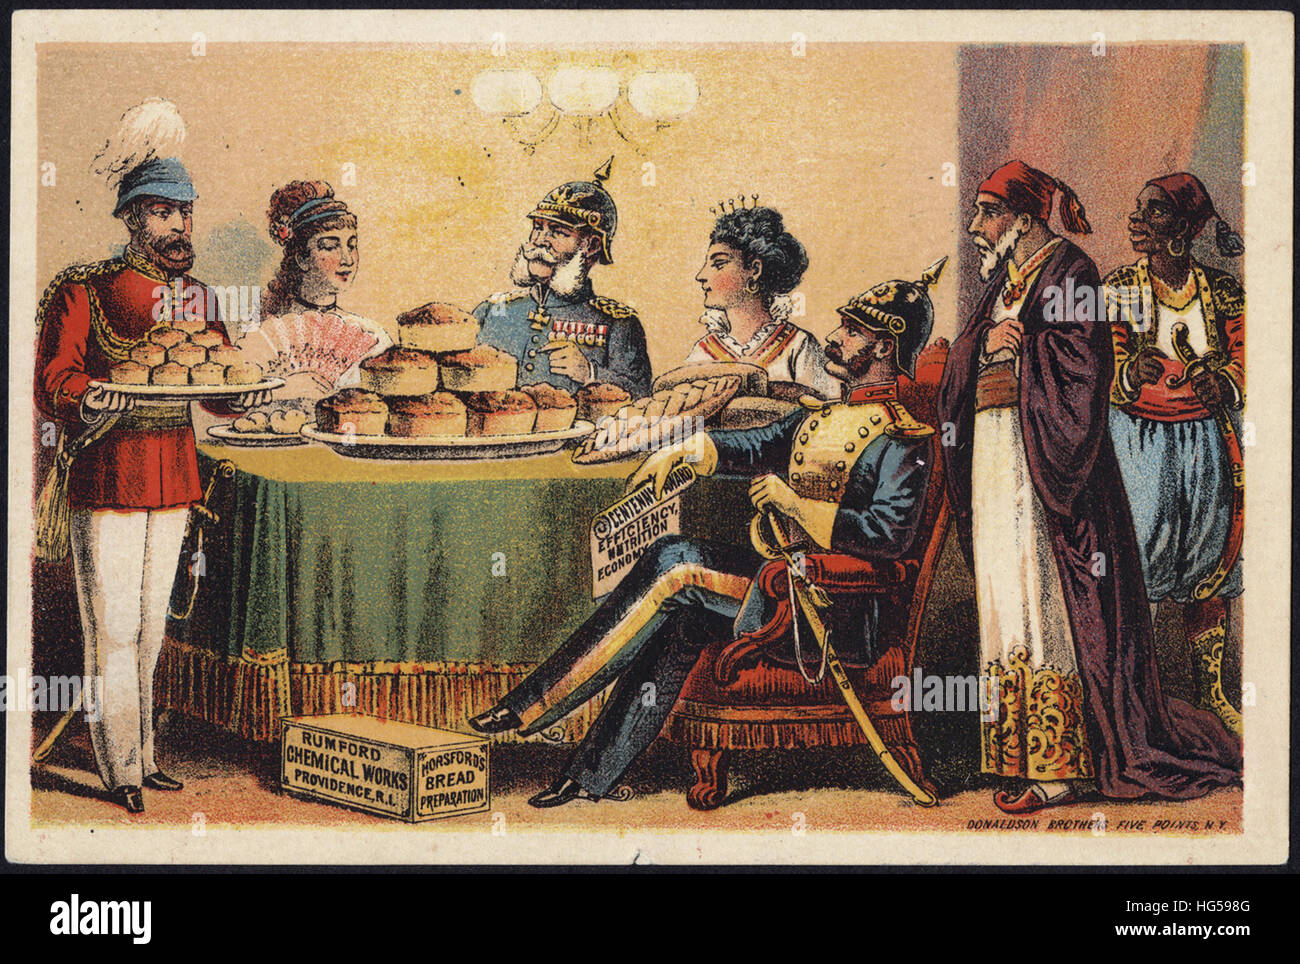 Baking Trade Card -  Rumford Chemical Works - Horsford's bread preparation. - Stock Image